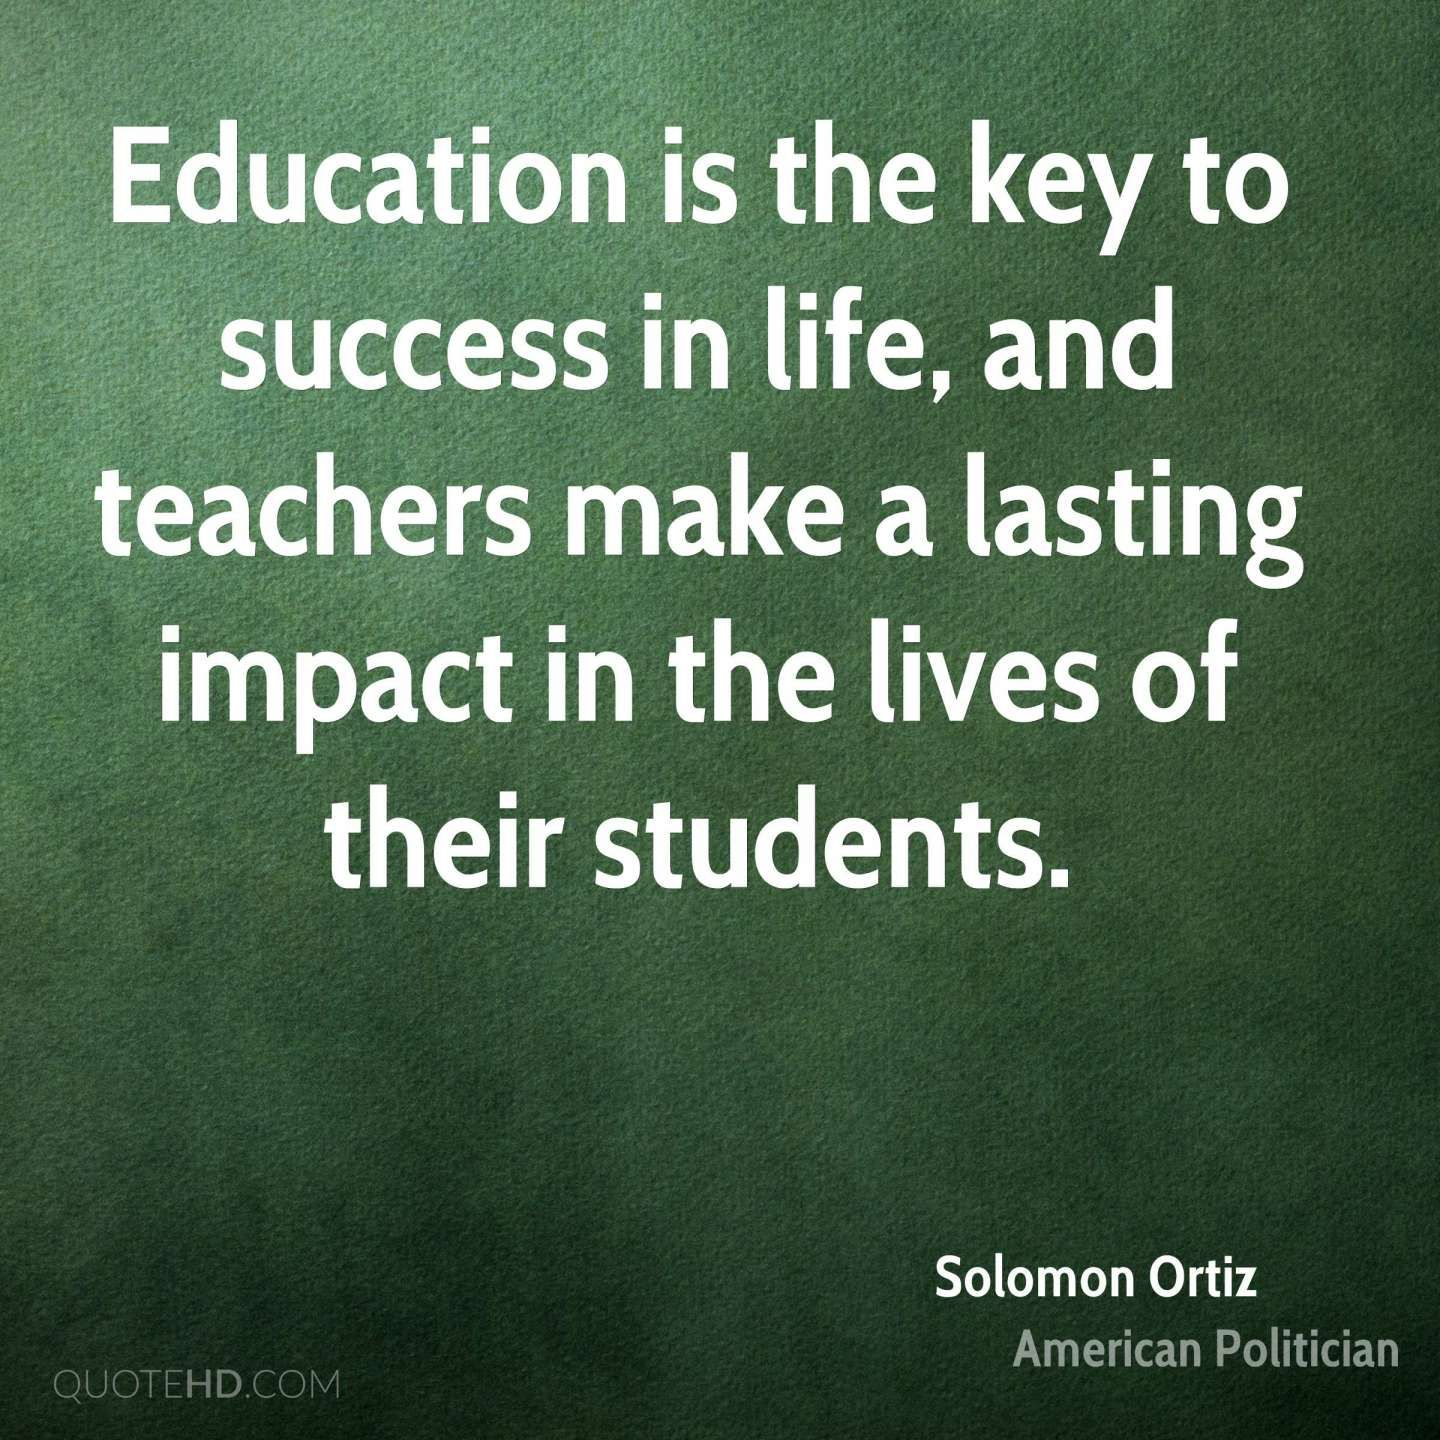 10 Education Is The Key To Success Quote Thomas Jefferson Education Quotes Inspirational Quotes For Students Inspirational Quotes About Success